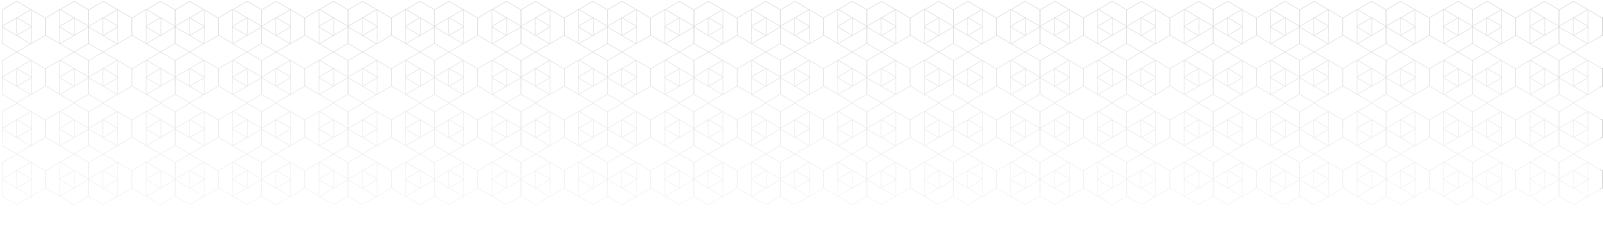 pattern_hexagon copy.png